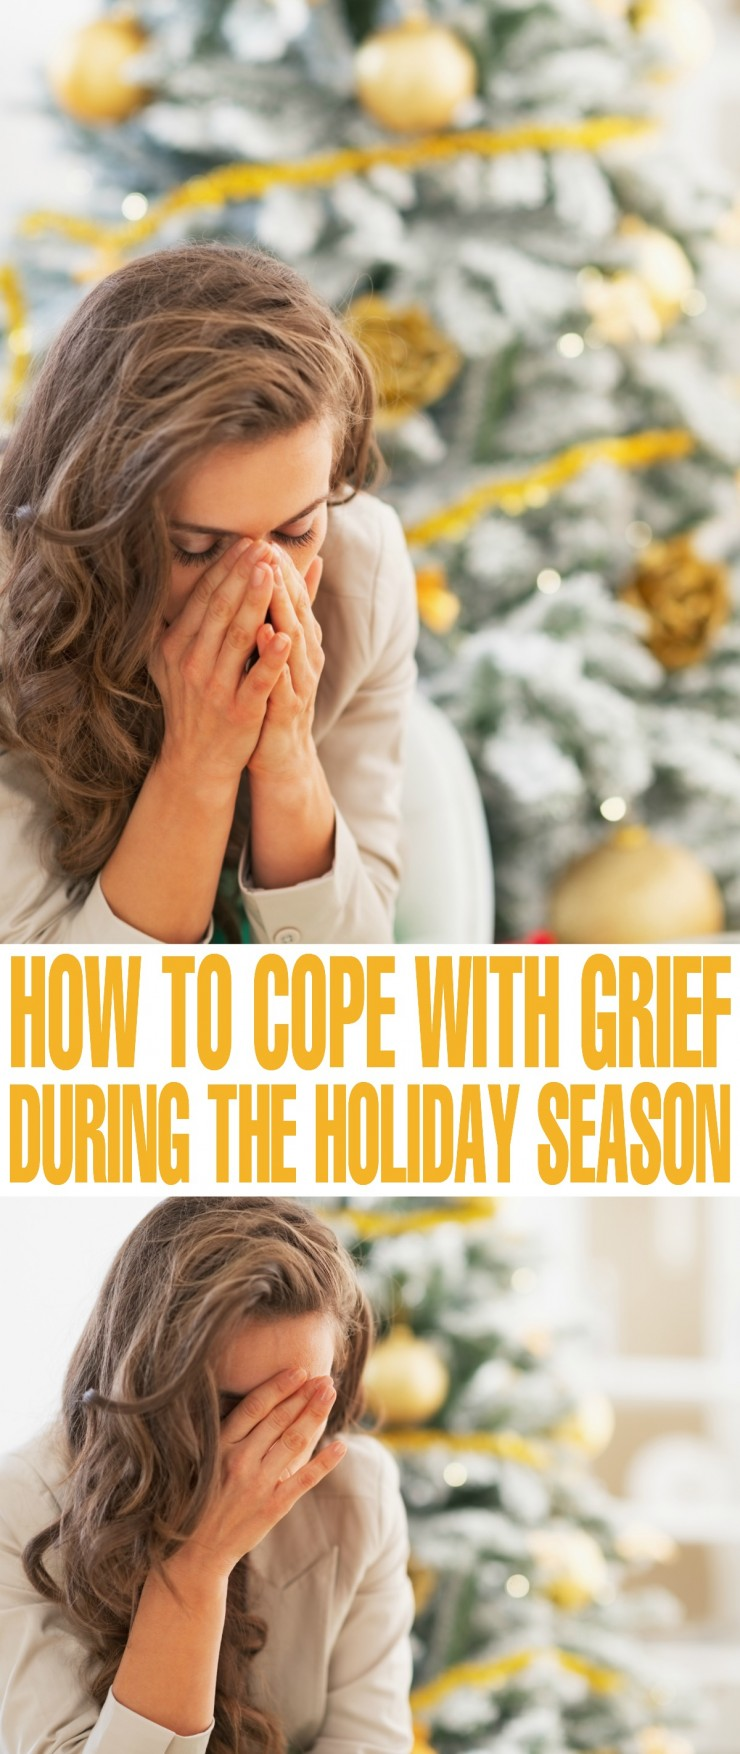 Coping with grief may seem nearly impossible when the holidays roll around. You're reminded of your loved ones, and miss their presence. Check out these tips for coping with your grief during the holiday season.